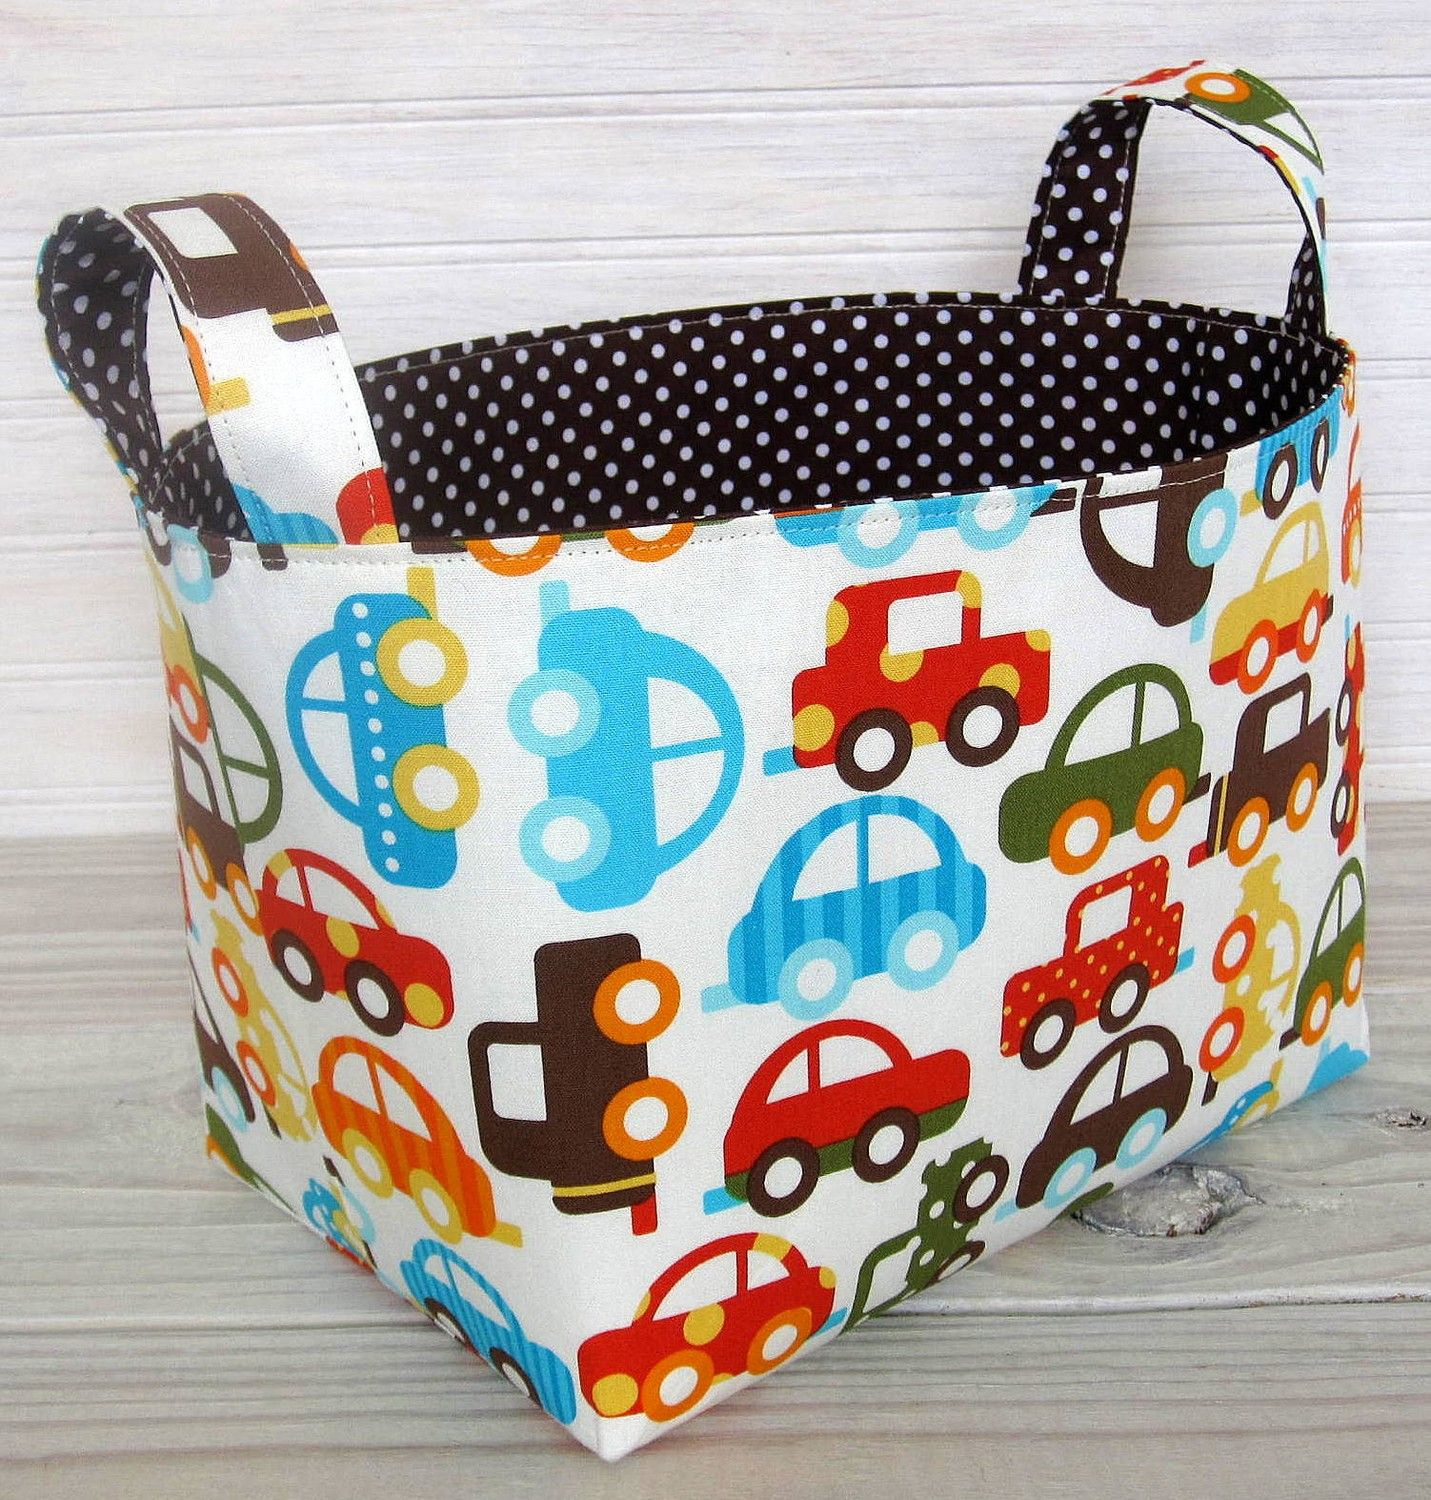 Basket Storage Bin Organizer - Ready Set Go Cars. This would also be a GREAT library book holder in the home to keep all those library books in one place.  sc 1 st  Pinterest & Storage Basket Fabric Bin Organizer Container - Ready Set Go Cars ...